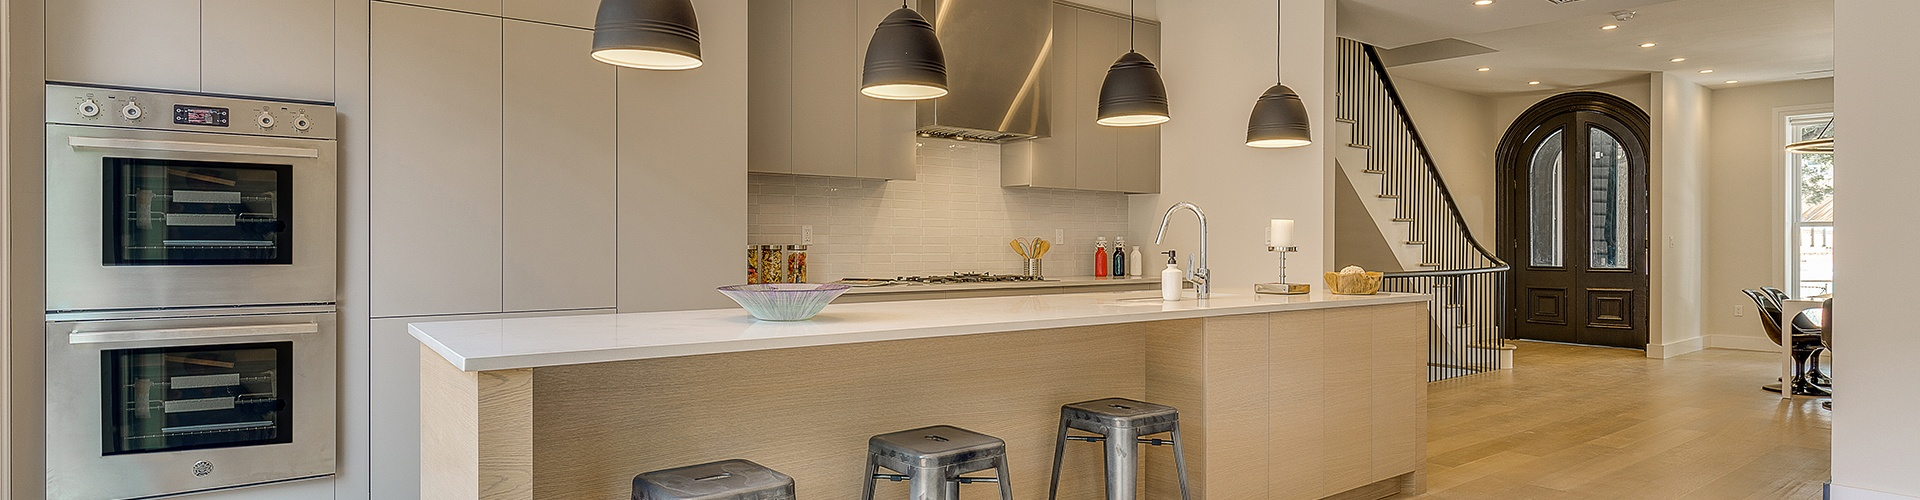 The Renovation: Downing Street — A Modern Take on a Classic Brownstone